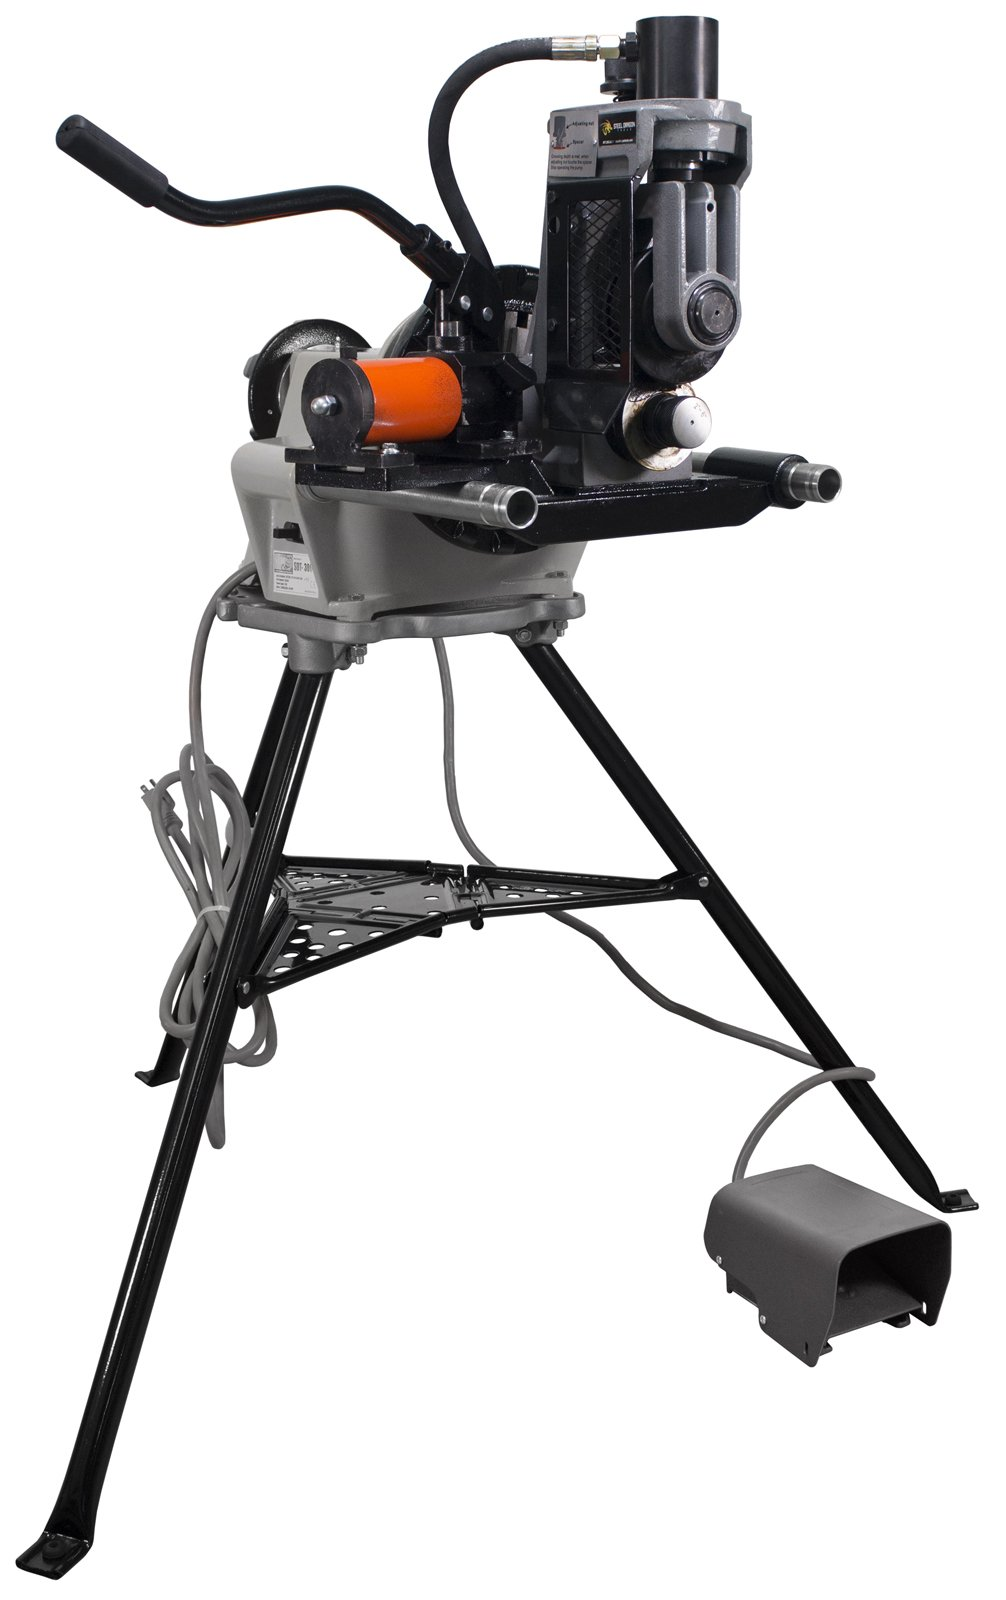 Steel Dragon Tools 918 Roll Groover 48297 Roll Groover fits RIDGID 300 Power Drive Pipe Threading Machine